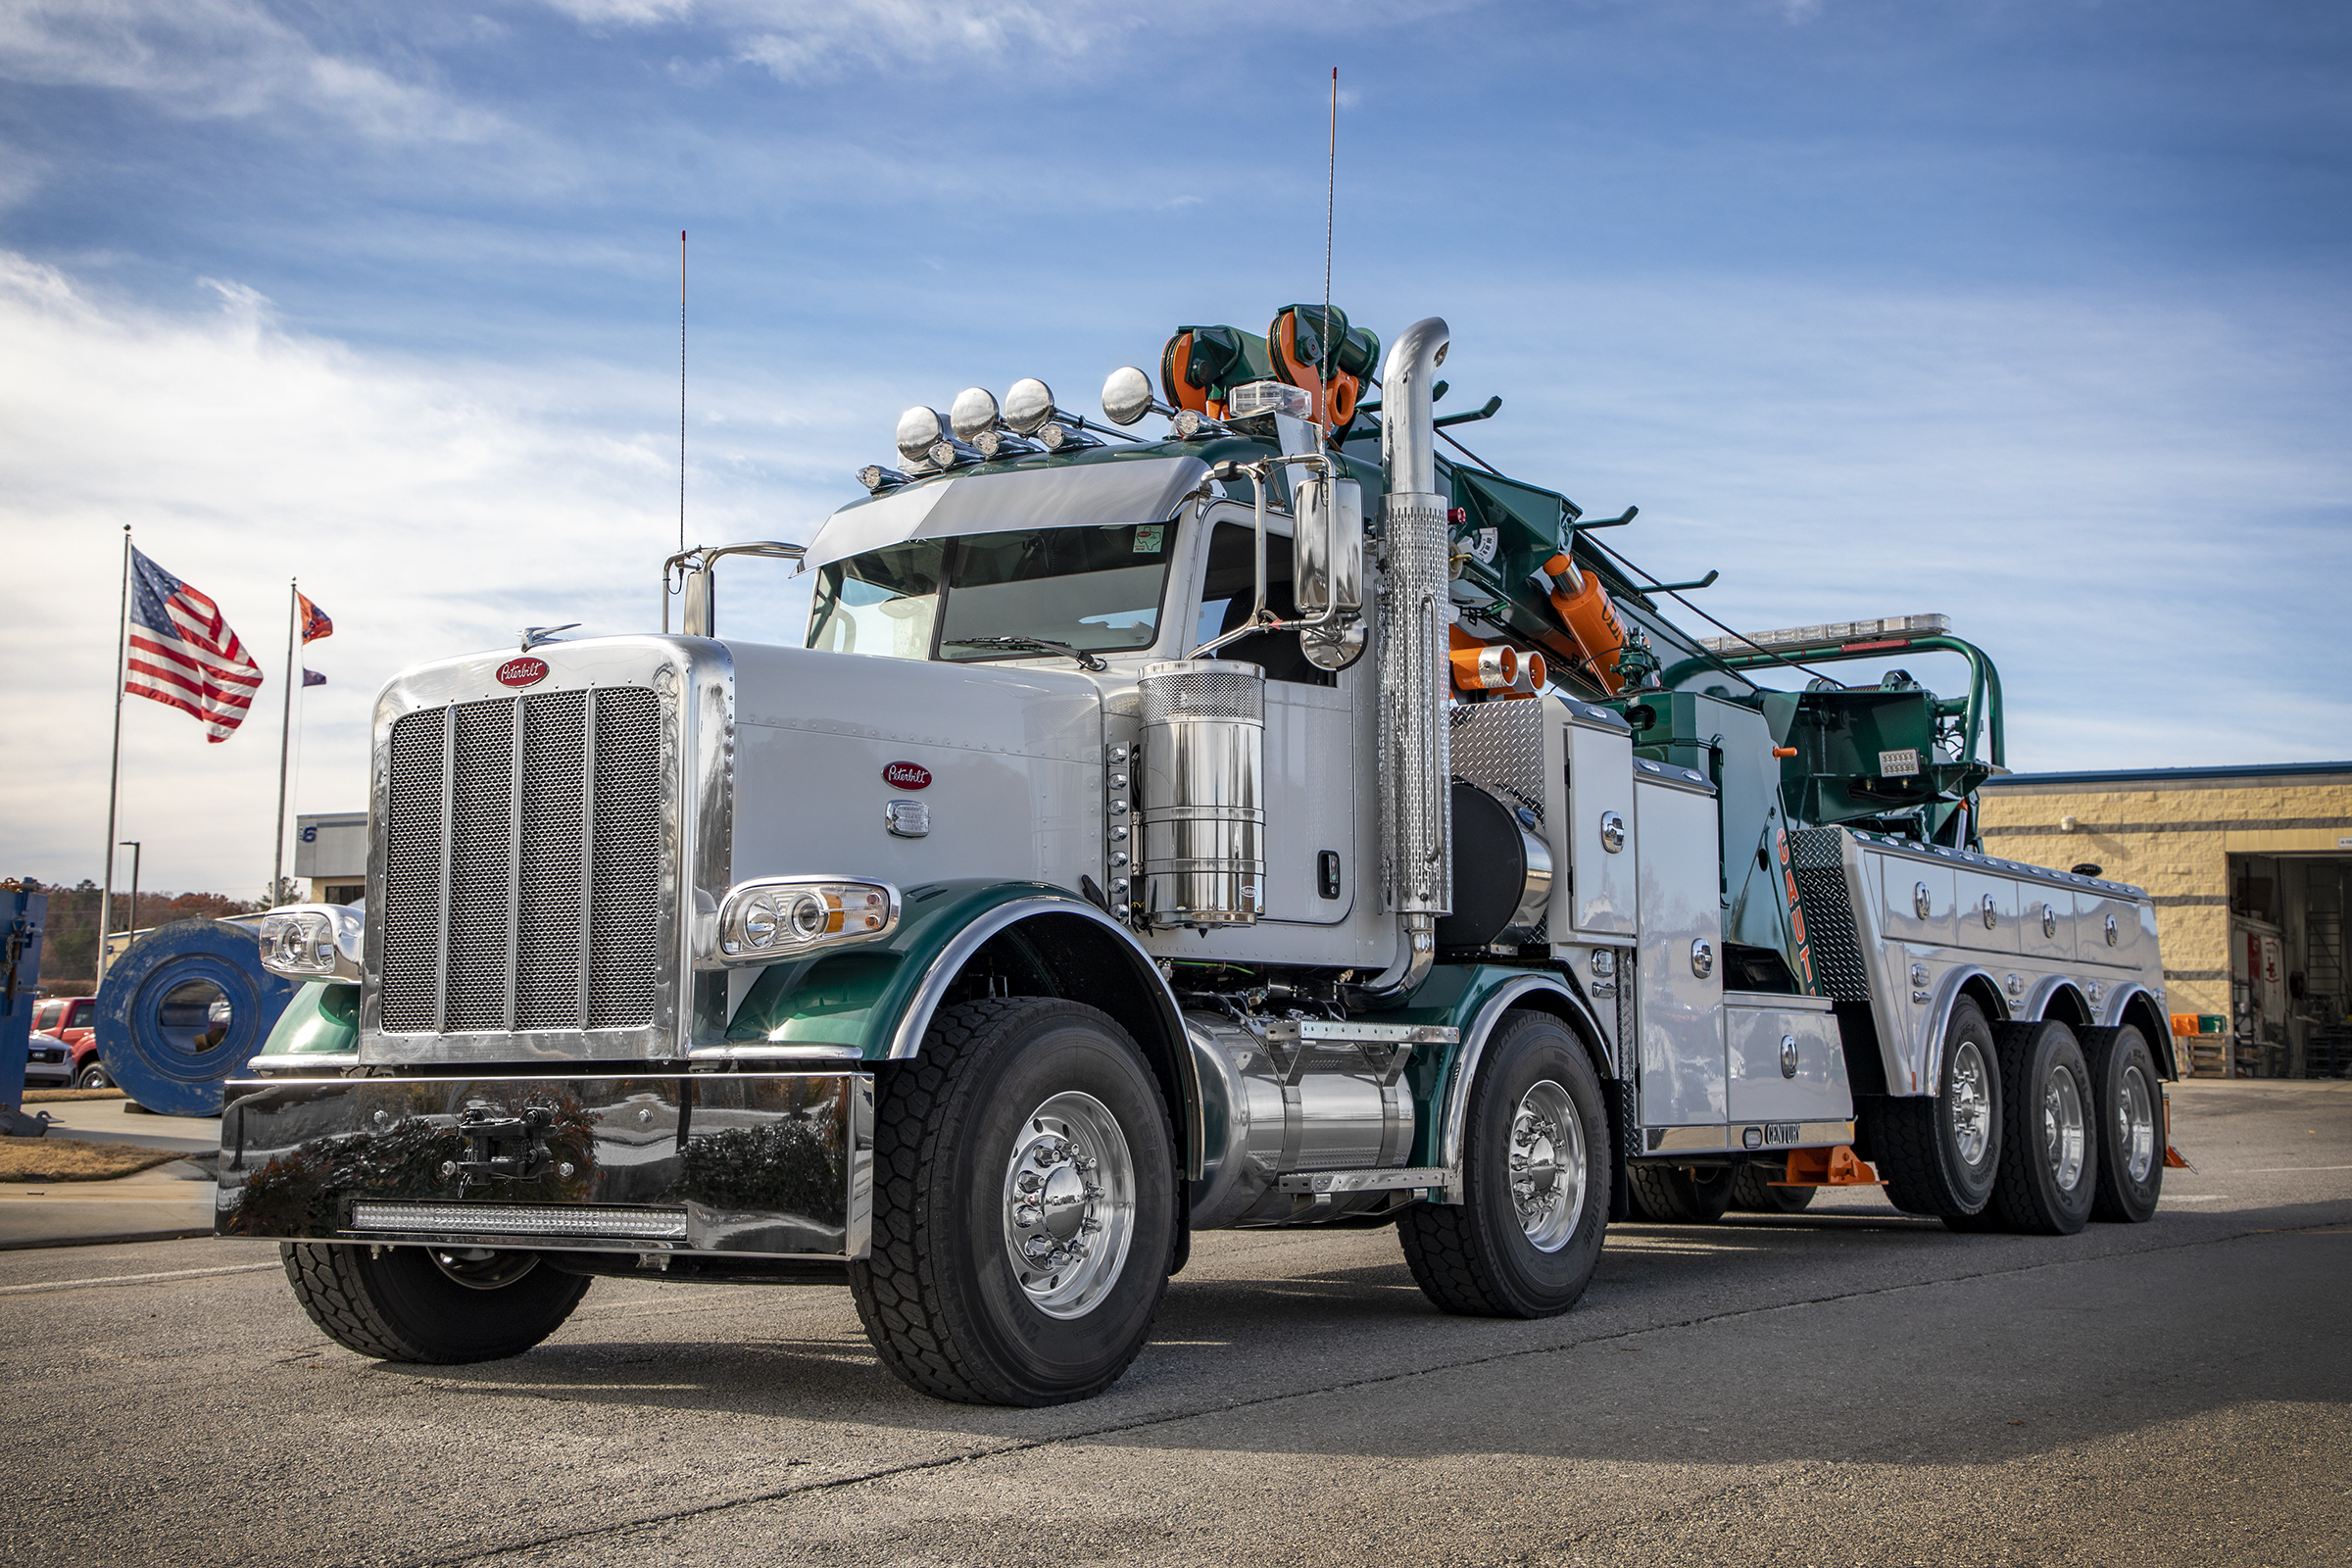 Century® 1150 Rotator  can be installed on multiple truck chassis like this one on a Peterbilt truck